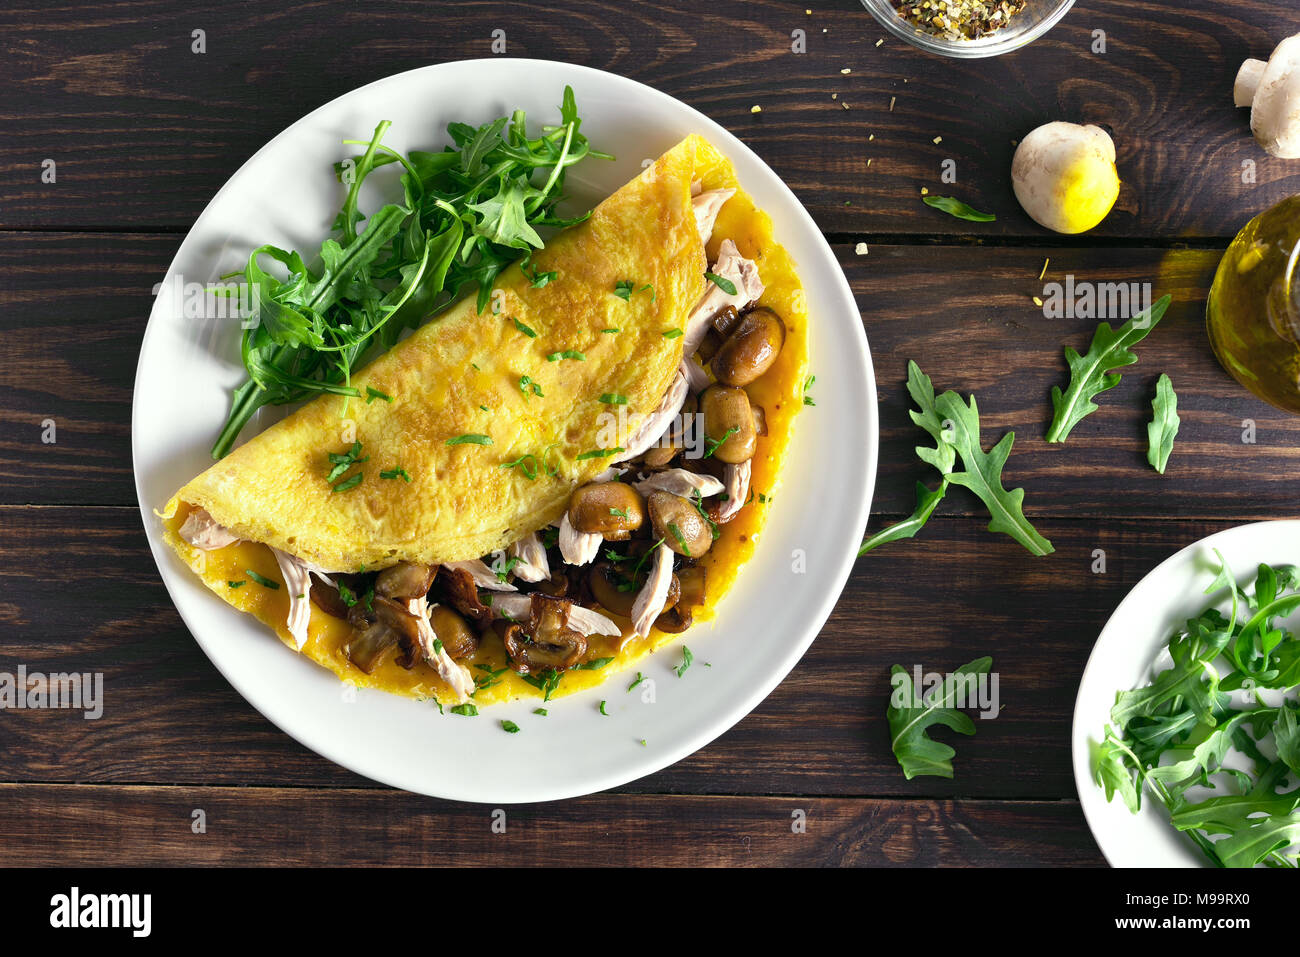 Omelet with mushrooms, chicken meat, greens on wooden table. Healthy food for breakfast. Top view, flat lay - Stock Image